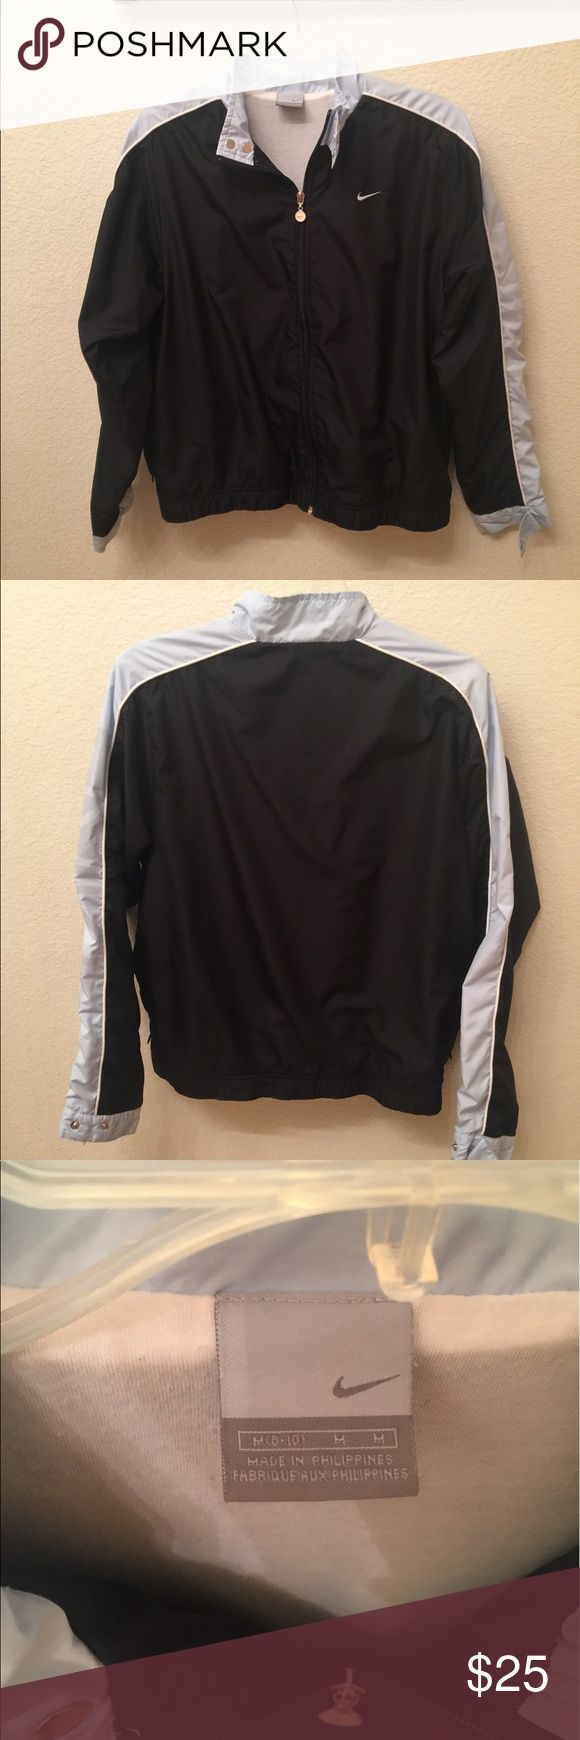 Nike Windbreaker Track Jacket Almost brand new light blue and black windbreaker. Very comfortable. Nike Jackets & Coats